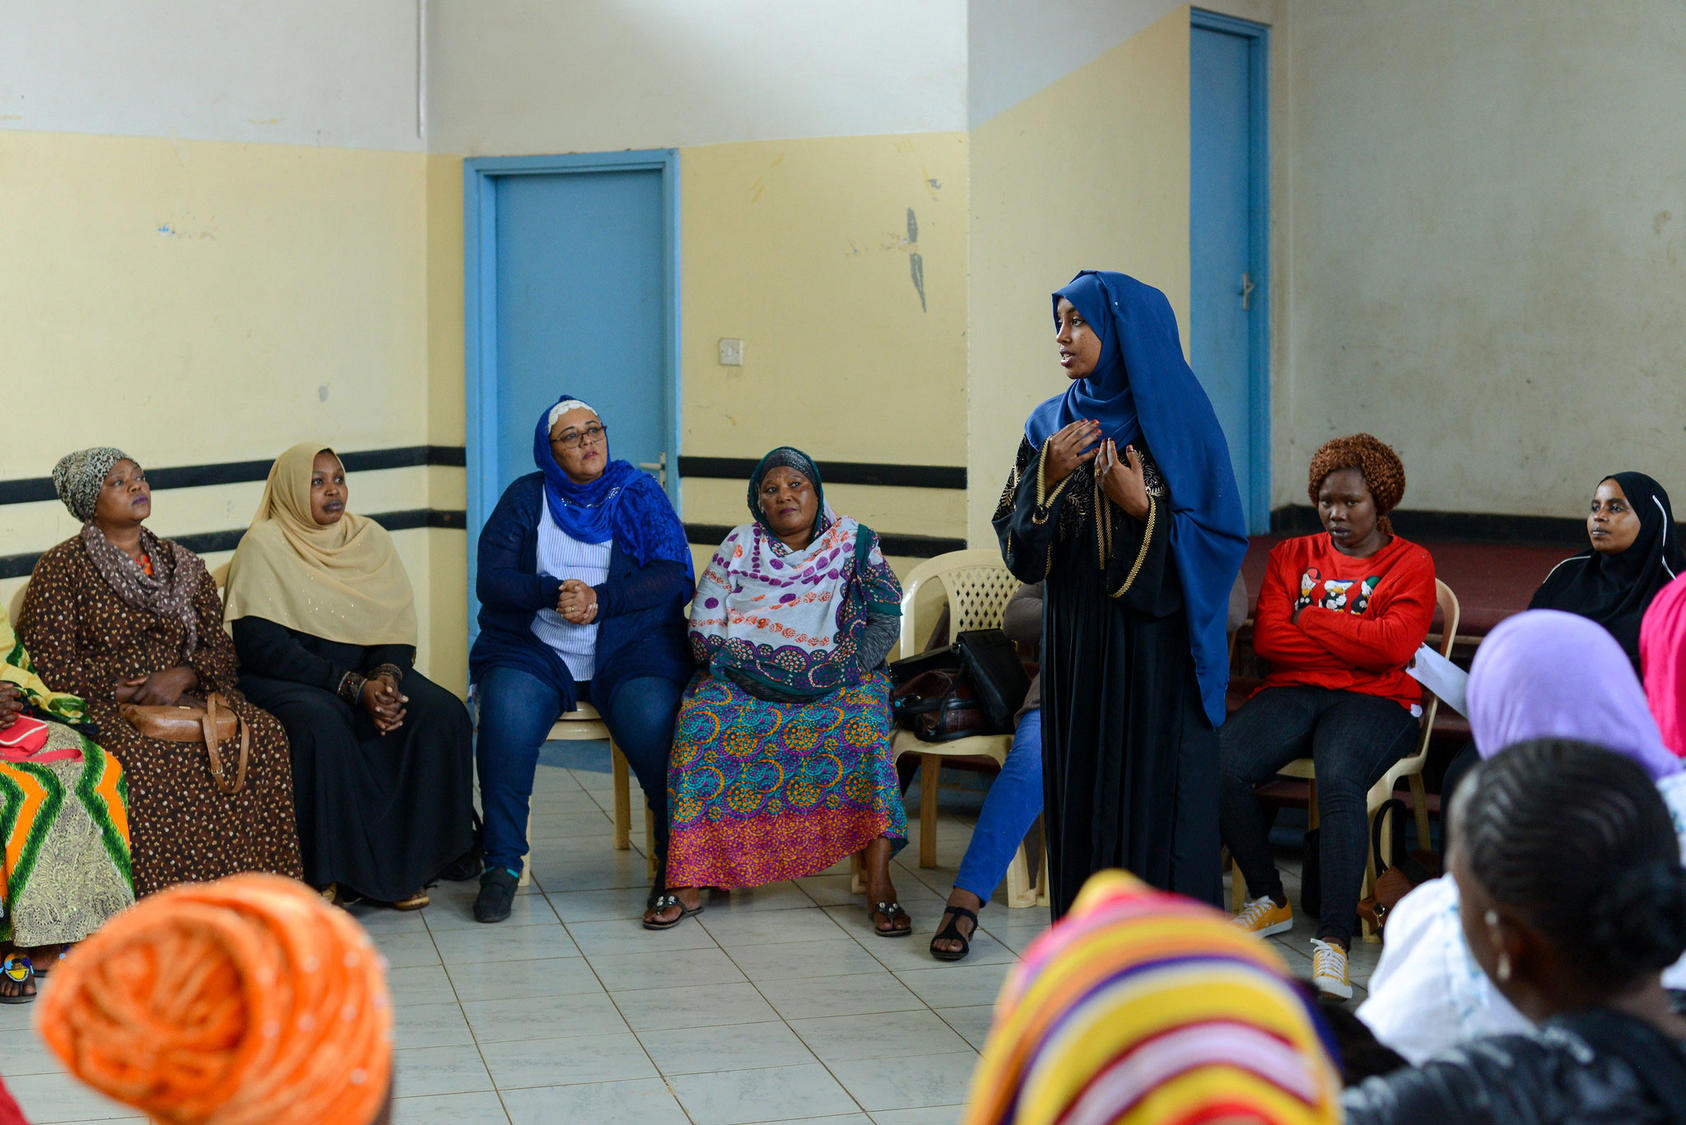 A dialogue on preventing extremism in the Eastleigh community of Nairobi, Kenya, organized by the Sisters Without Borders (SWB) network.